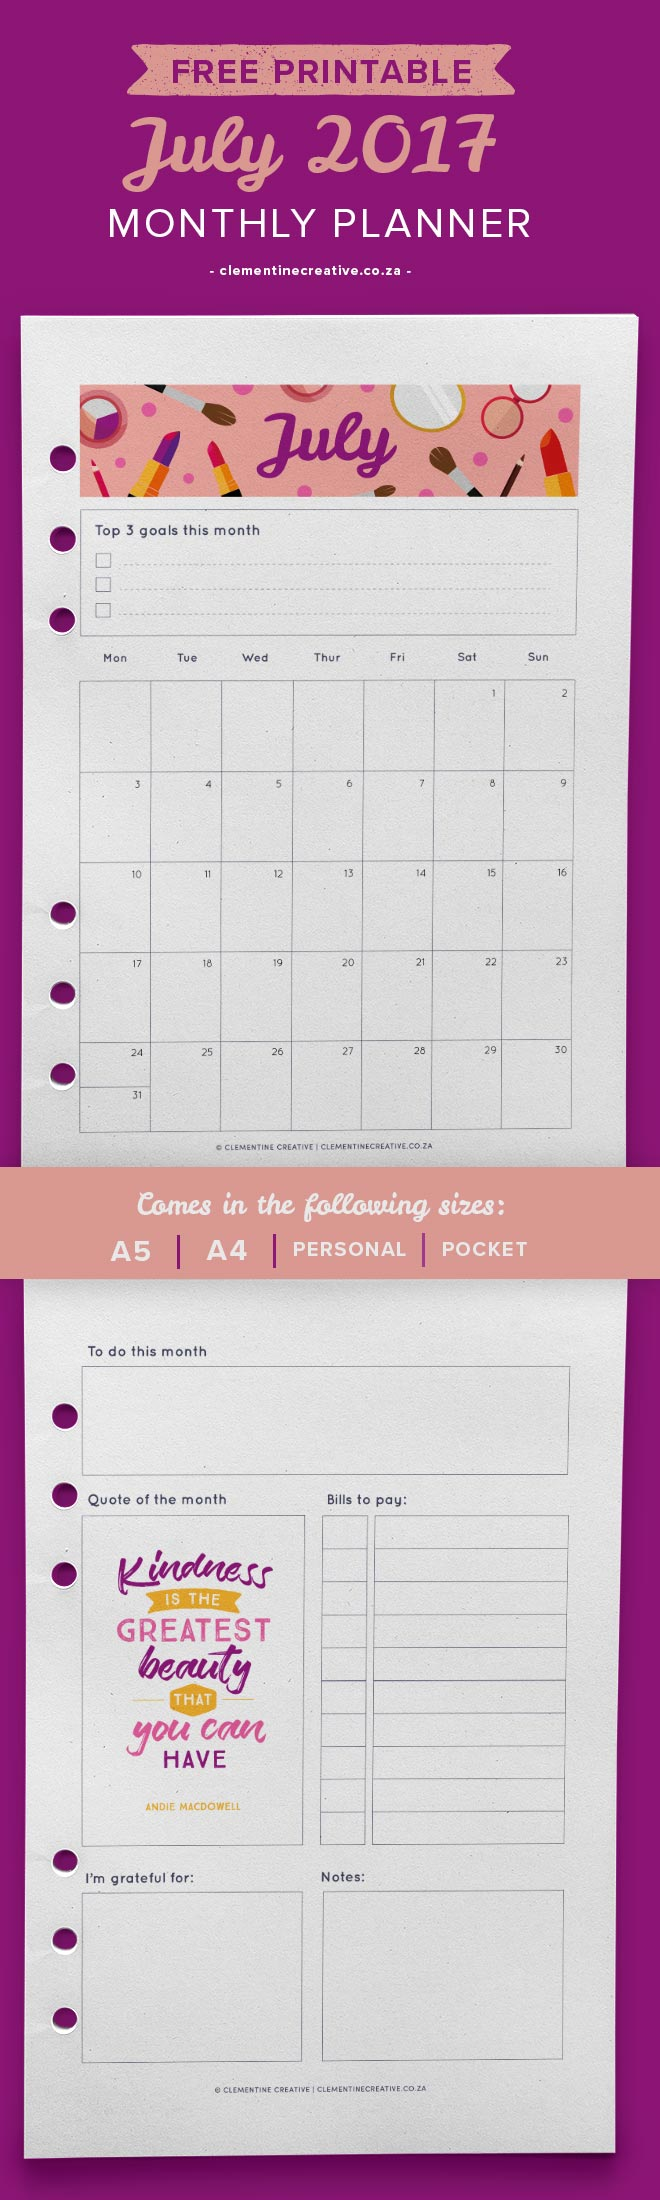 july 2017 free printable monthly planner clementine creative